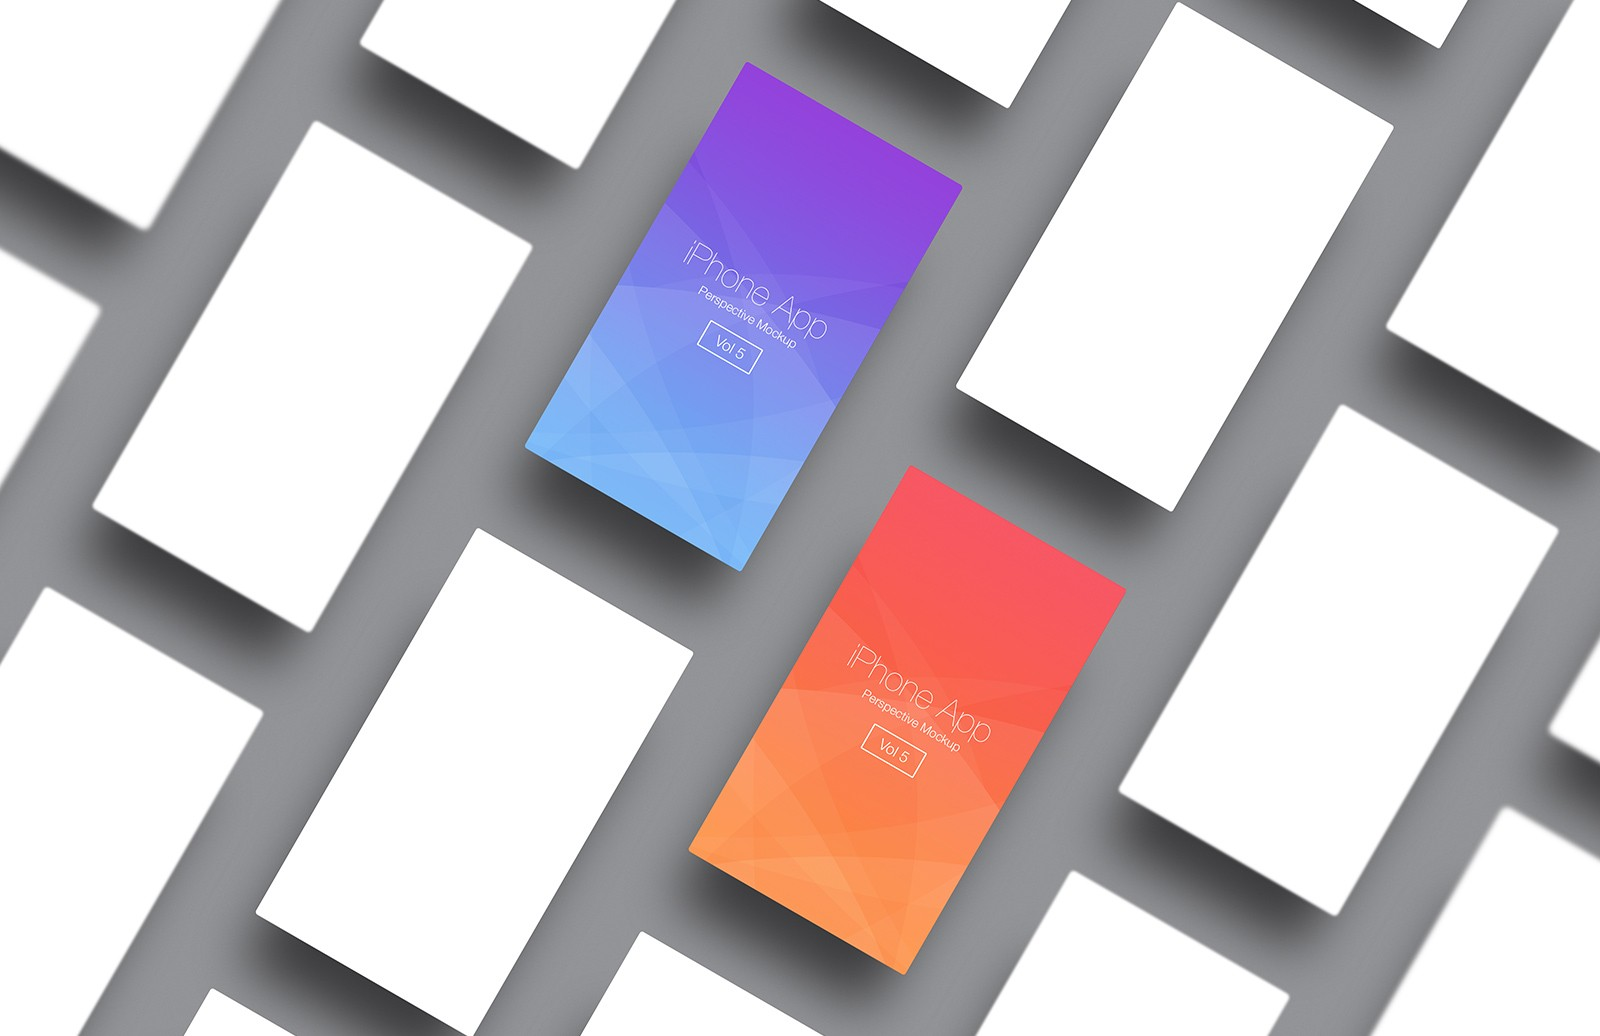 Large I Phone  App  Perspective  Mockup  Vol 5  Preview 1